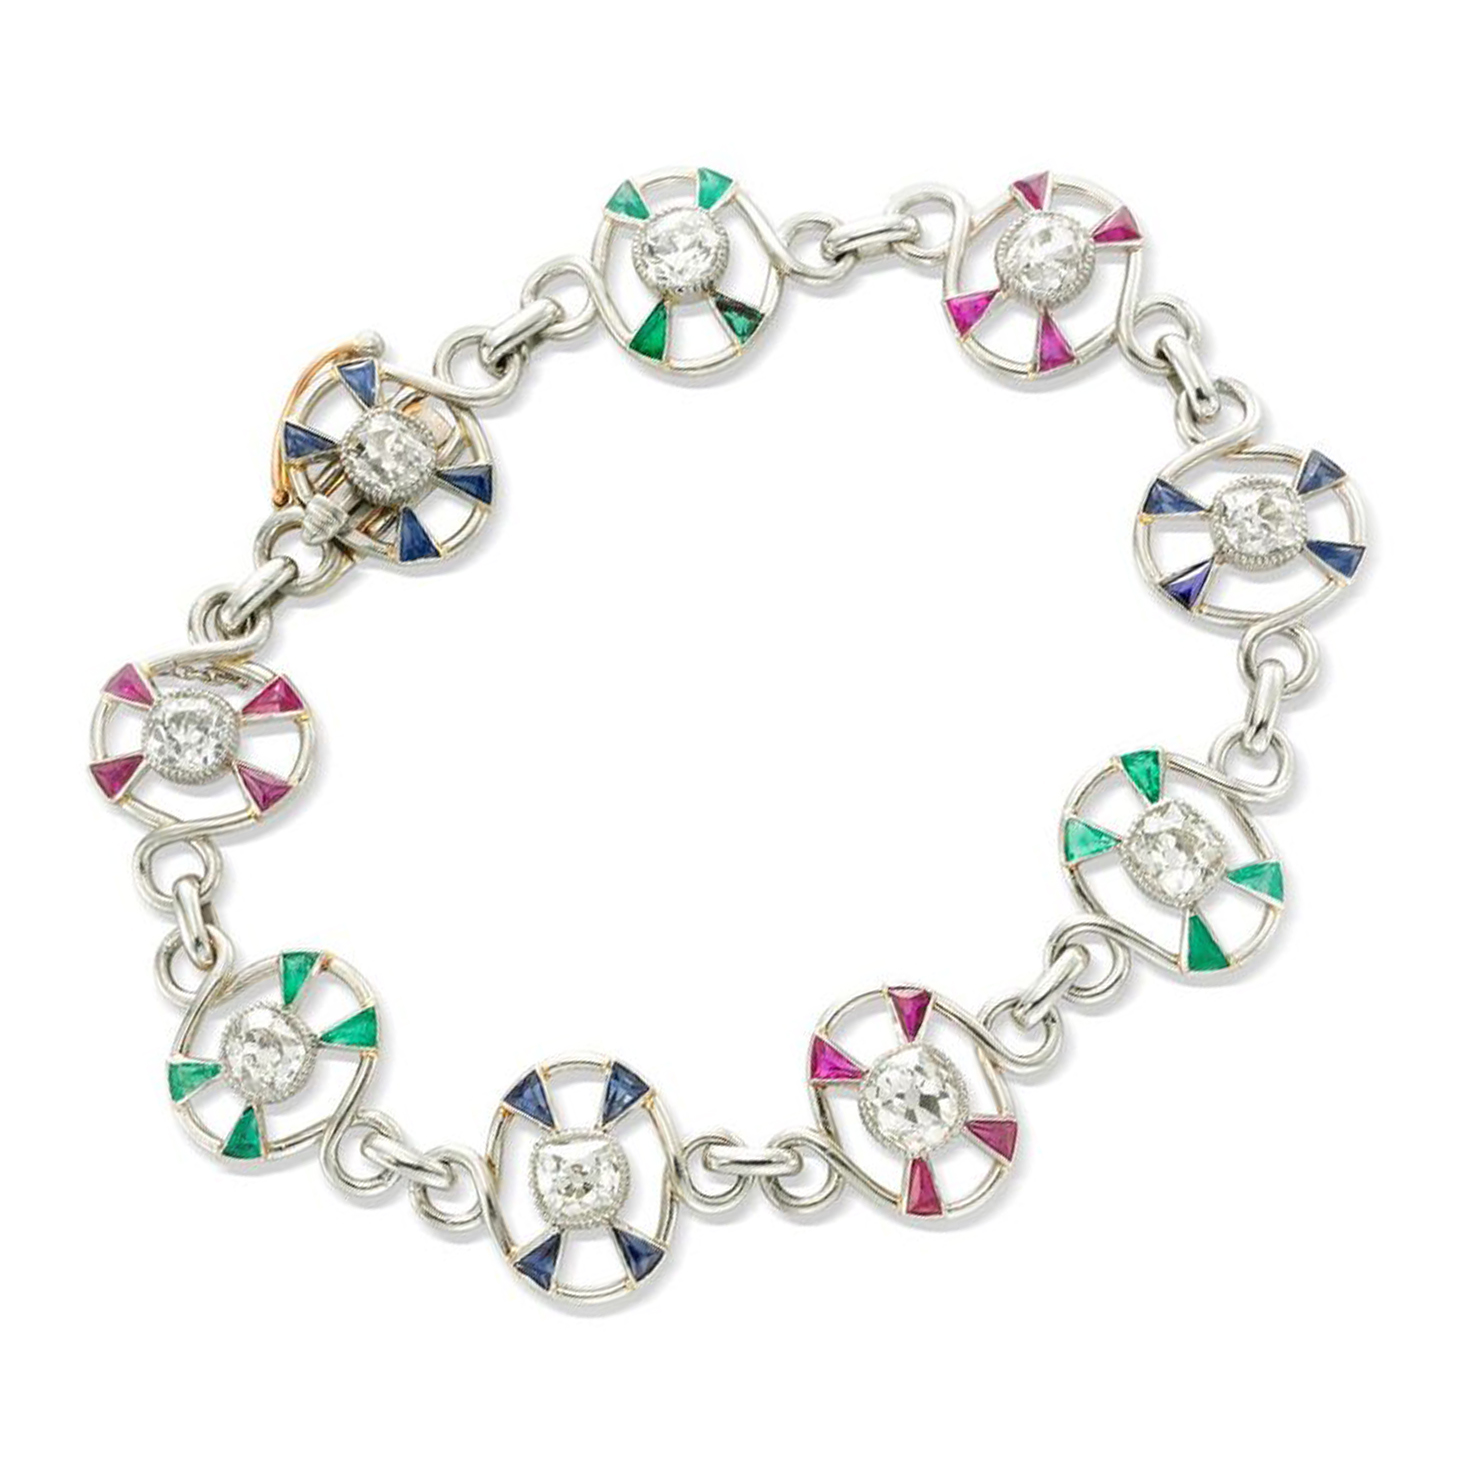 An Early 20th Century Ruby, Emerald, Sapphire and Diamond Bracelet